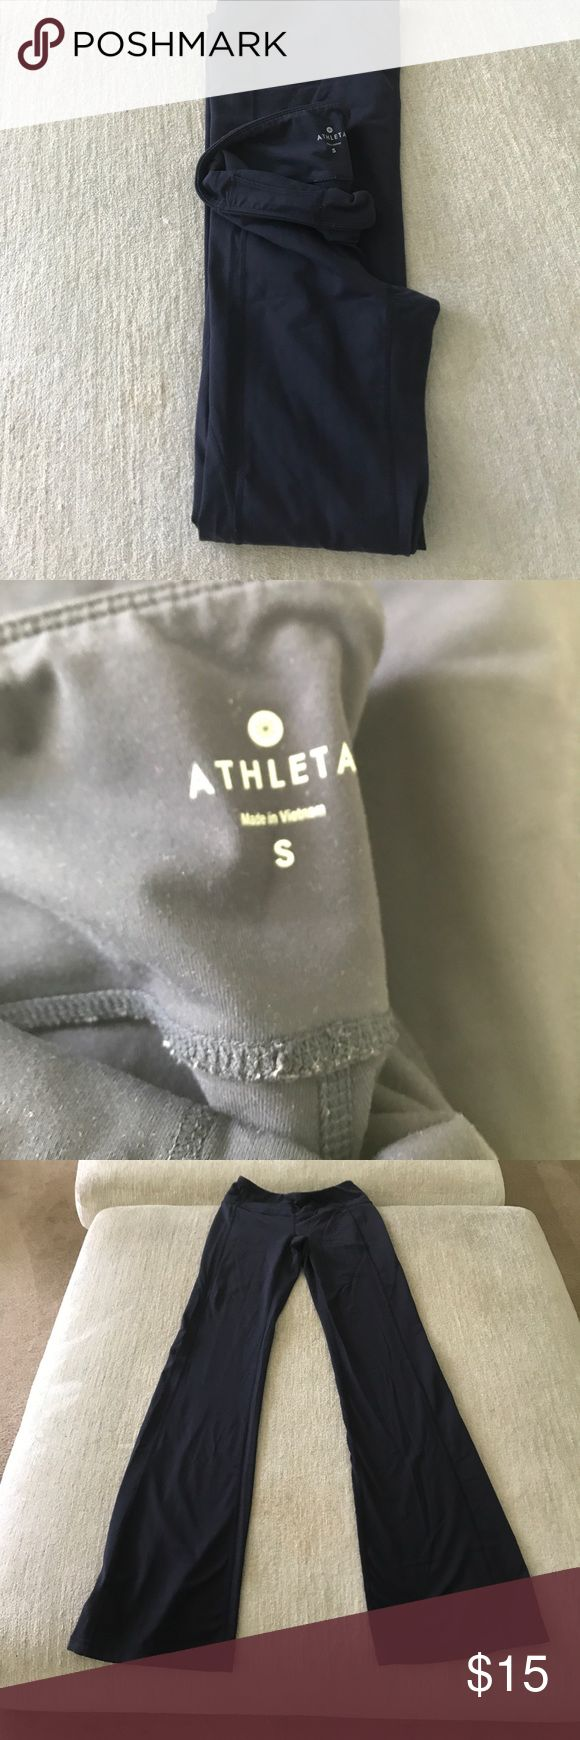 Athleta boot cut navy yoga pants Worn 2 times just too long on me for yoga - for all you tall people! Super soft great breathing material a top brand for work out or running errands - boot cut makes them even good for wearing out! Athleta Pants Leggings